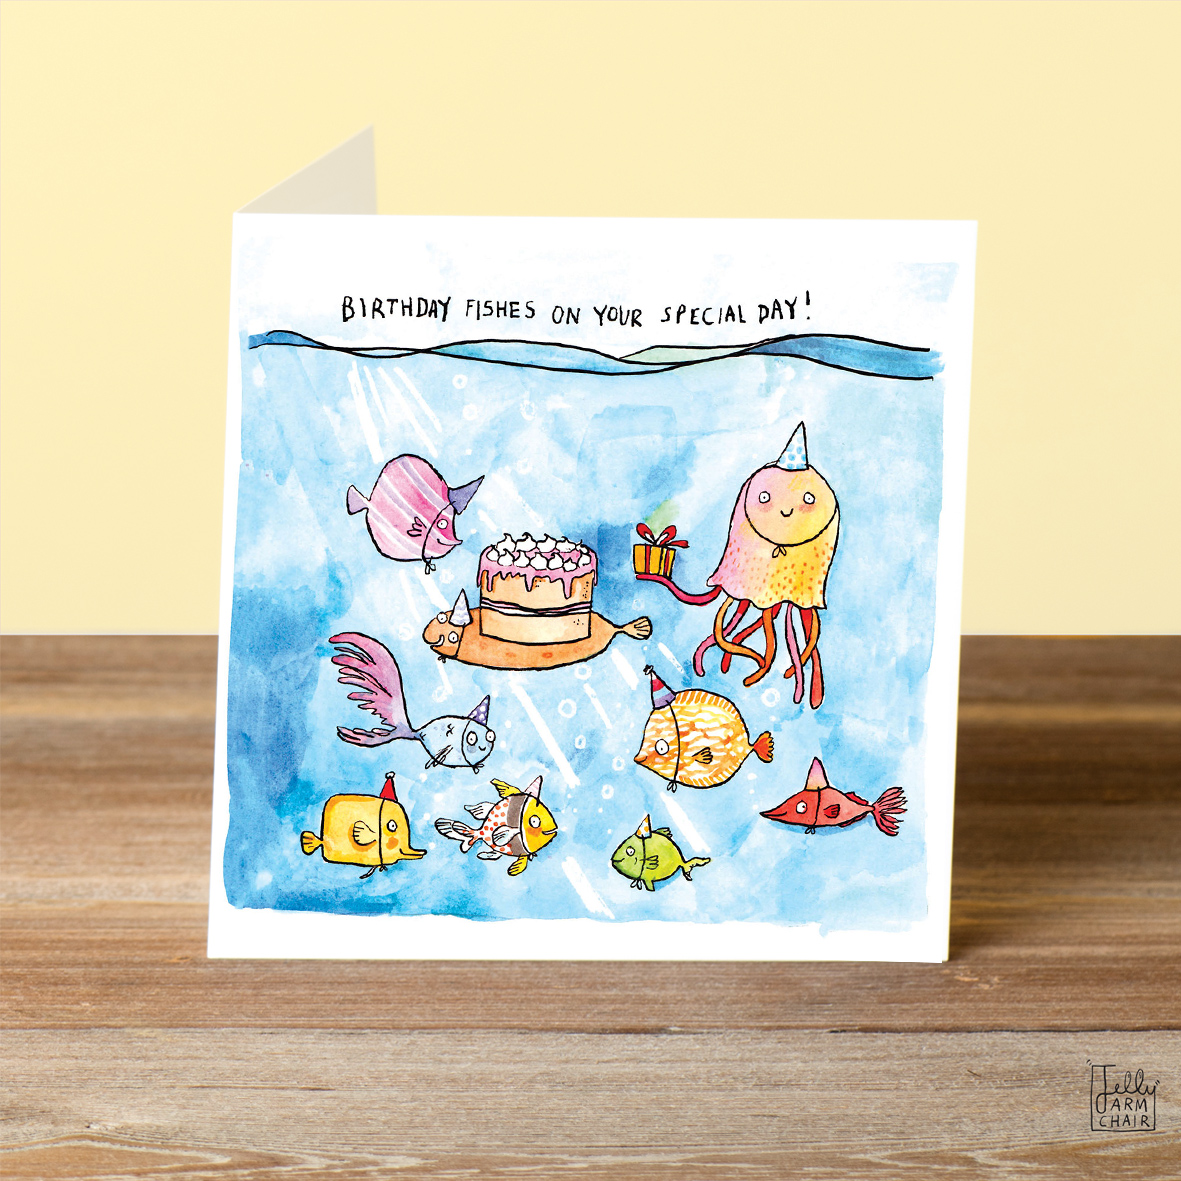 Birthday-Fishes_-Birthday-card-with-fish-based-pun.-Fish-themed-birthday-card_FW10_OT